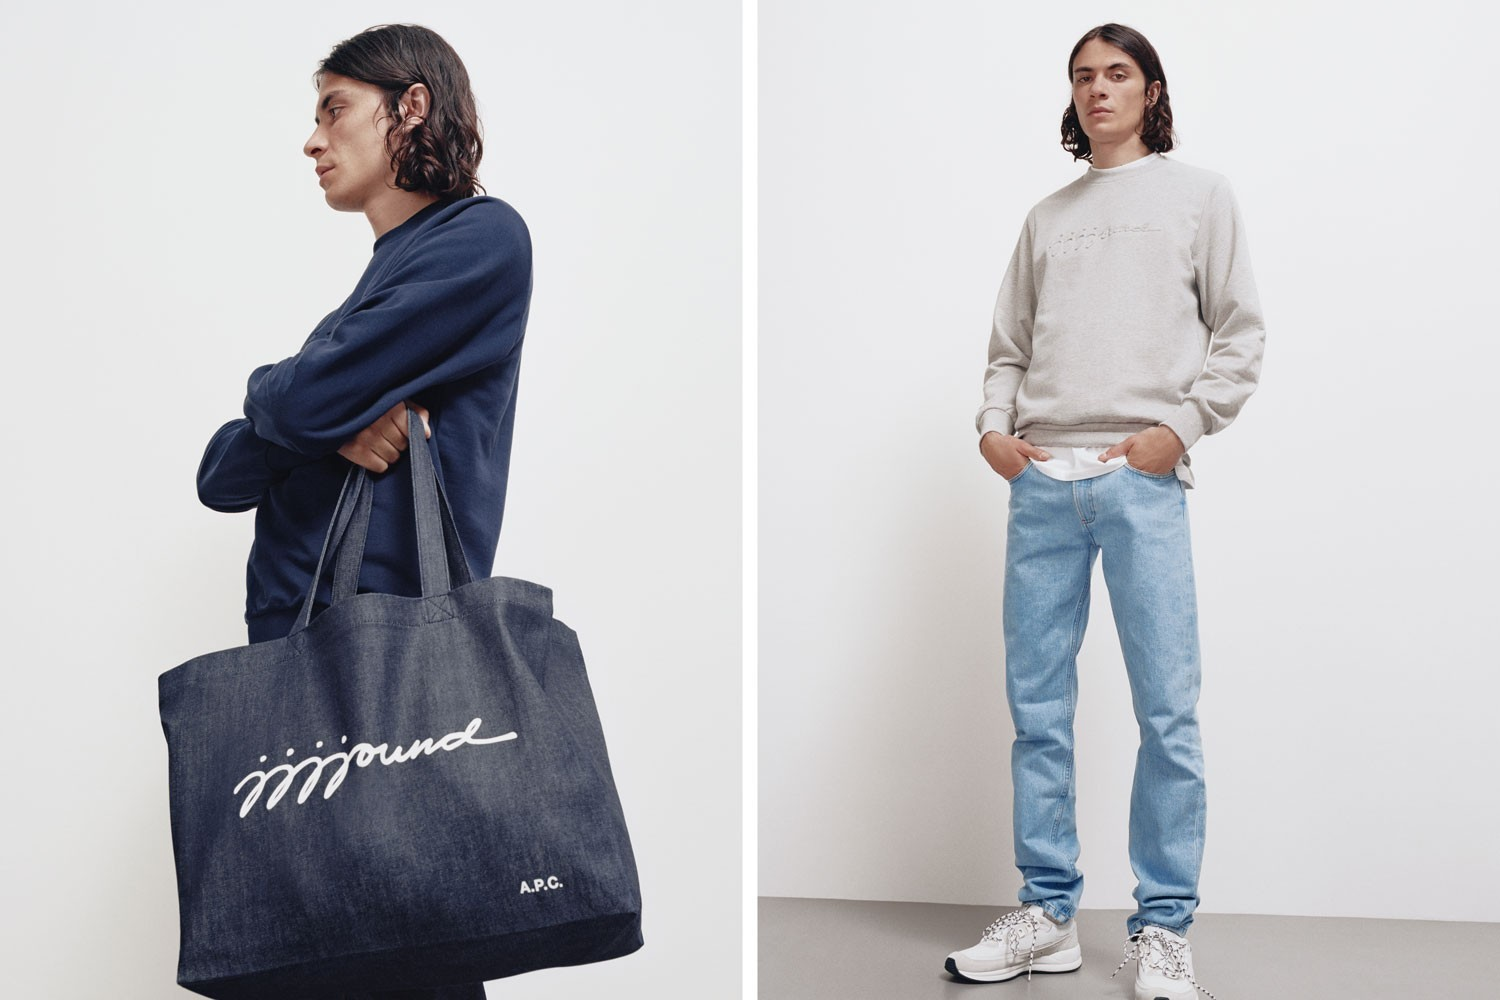 A.P.C. x JJJJound Interaction #4 Mens 2019 Denim